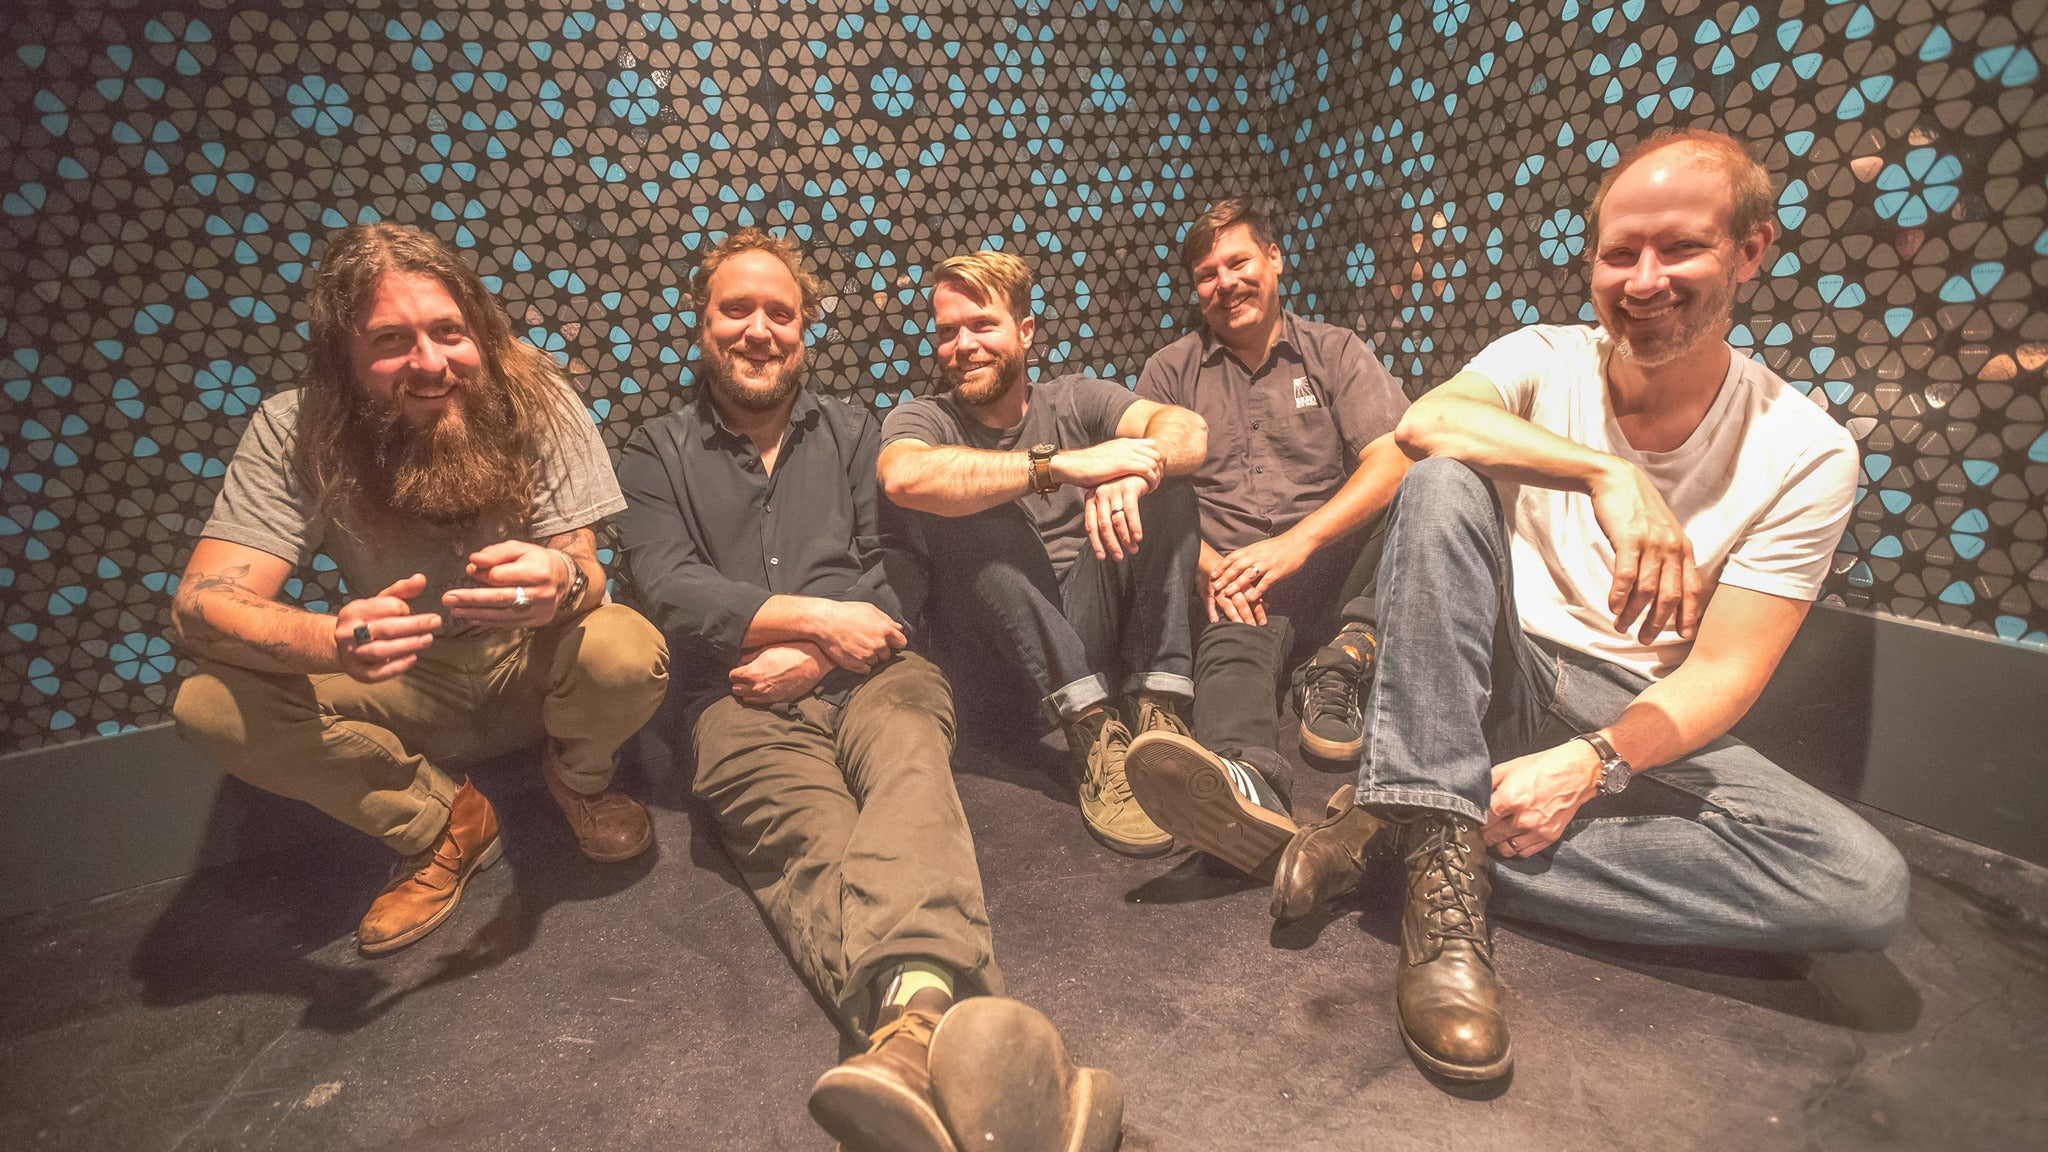 Greensky Bluegrass at State Theatre, Kalamazoo